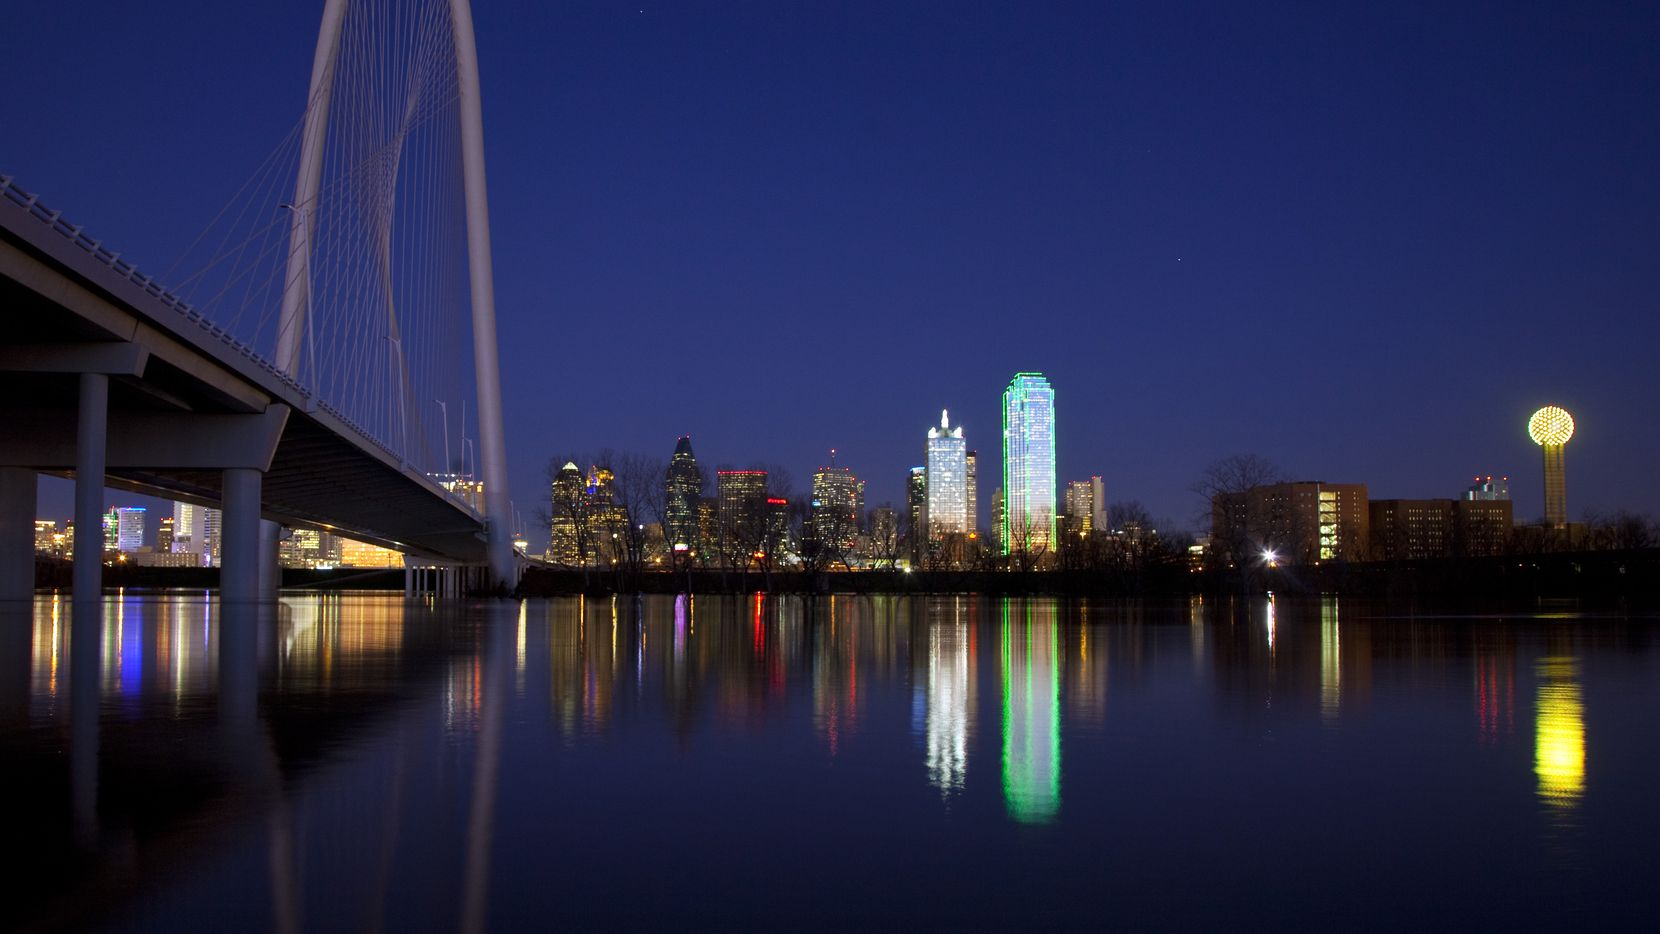 Spanning the flooded Trinity River between downtown and West Dallas, the Margaret Hunt Hill Bridge is seen as the river crests at dusk, Thursday, January 26, 2012.  A significant rainfall filled the river bottom from bank-to-bank. World-renowned architect Santiago Calatrava designed the bridge. Reunion Tower is at far right. (Tom Fox/The Dallas Morning News)